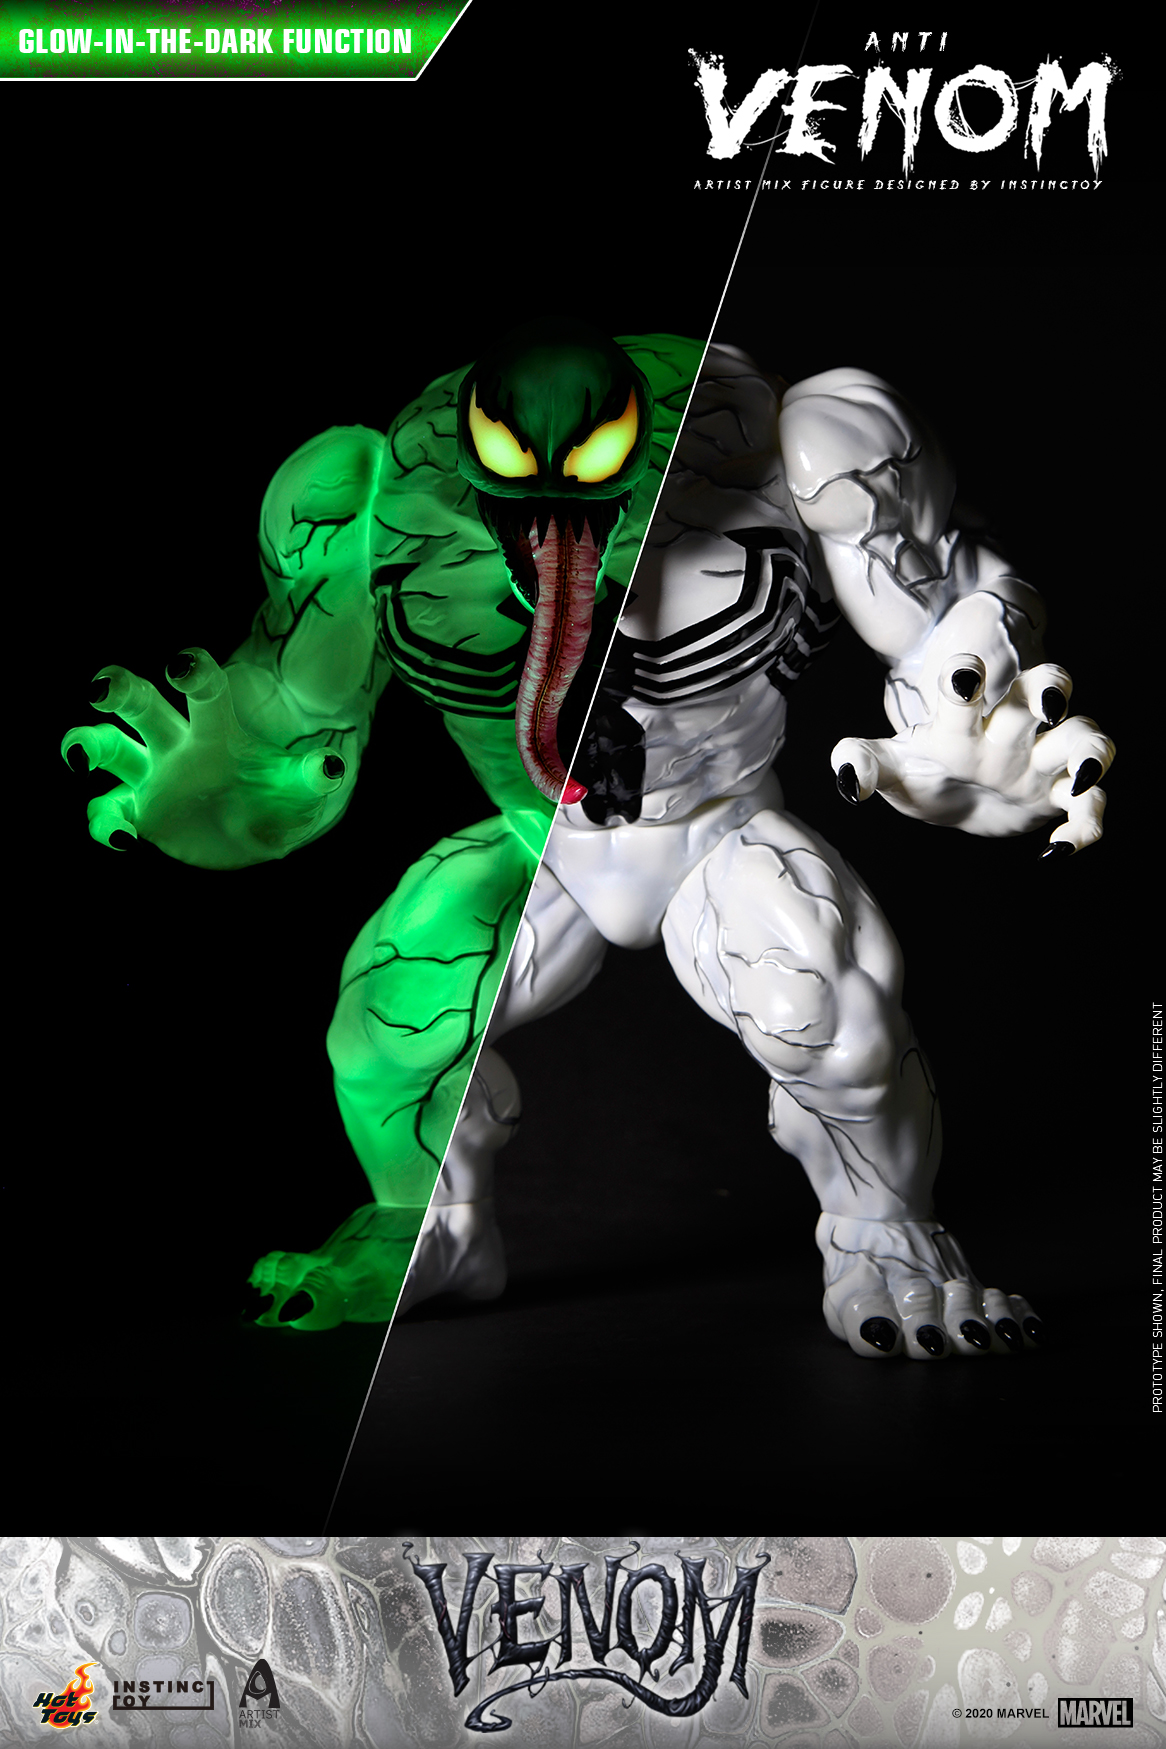 Hot Toys - Venom (Comic) - Anti Venom Artist Mix Designed by INSTINCTOY_PR2